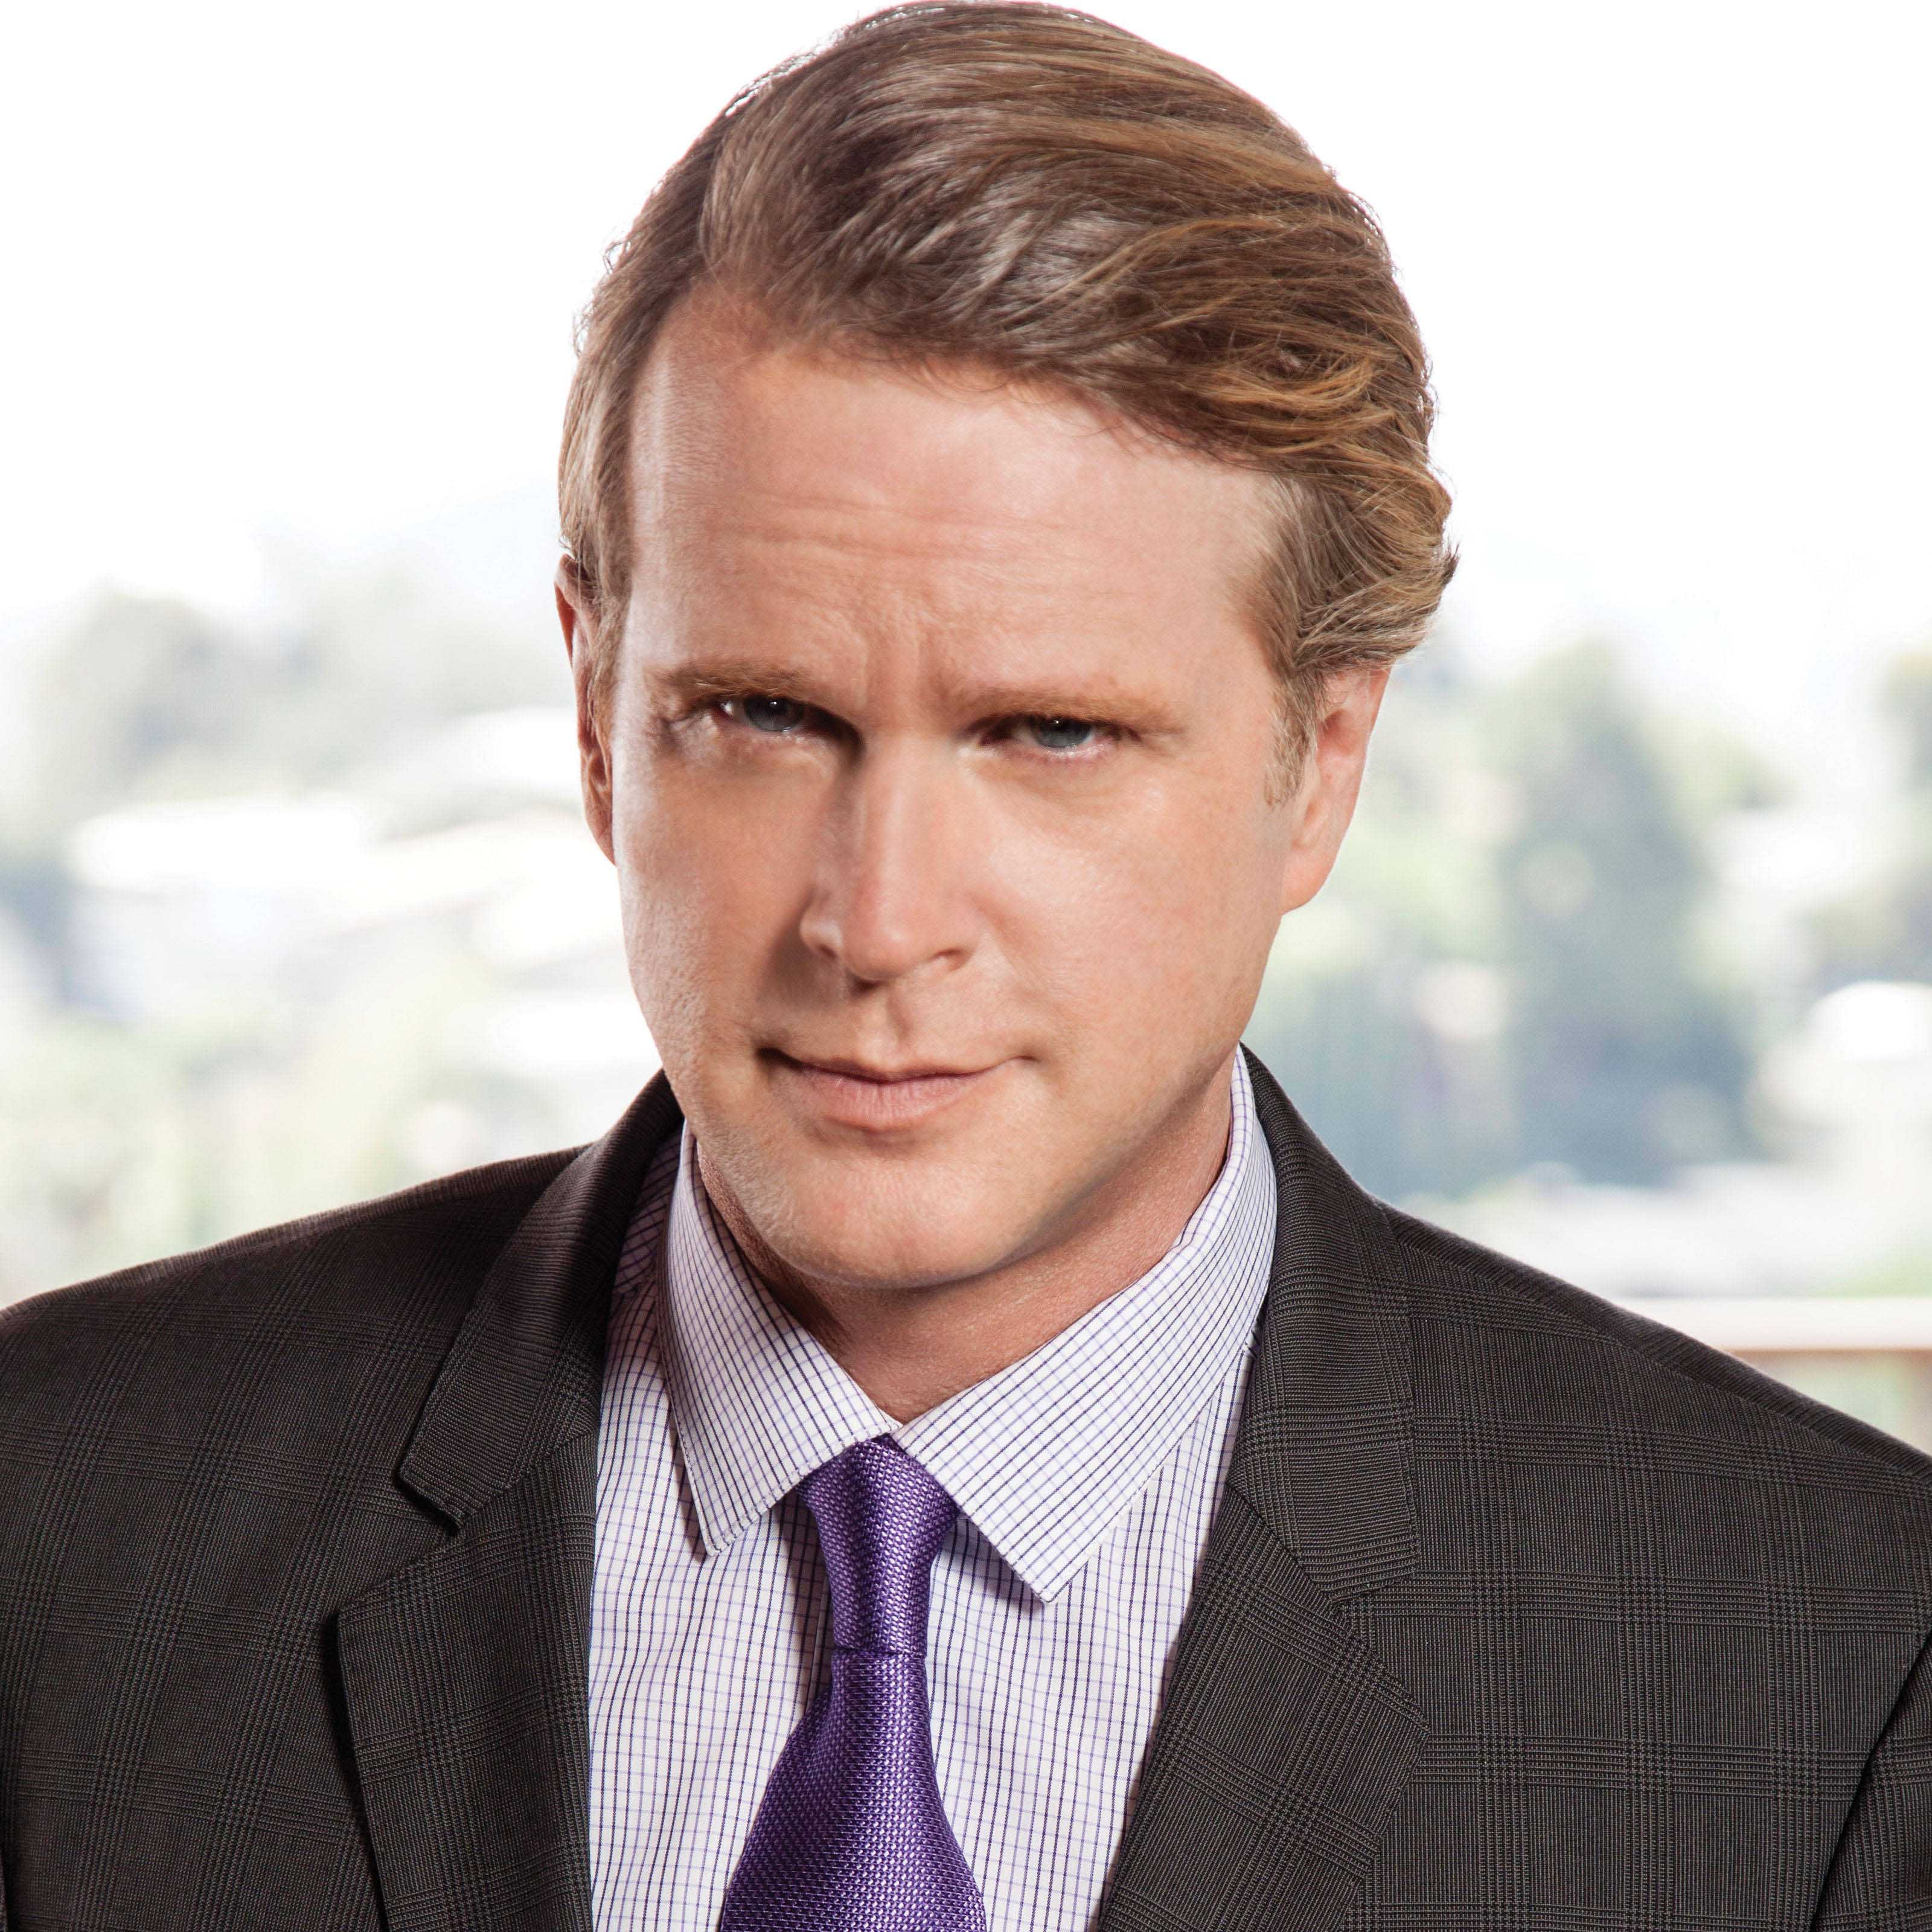 Cary Elwes Biography • Actor • Profile